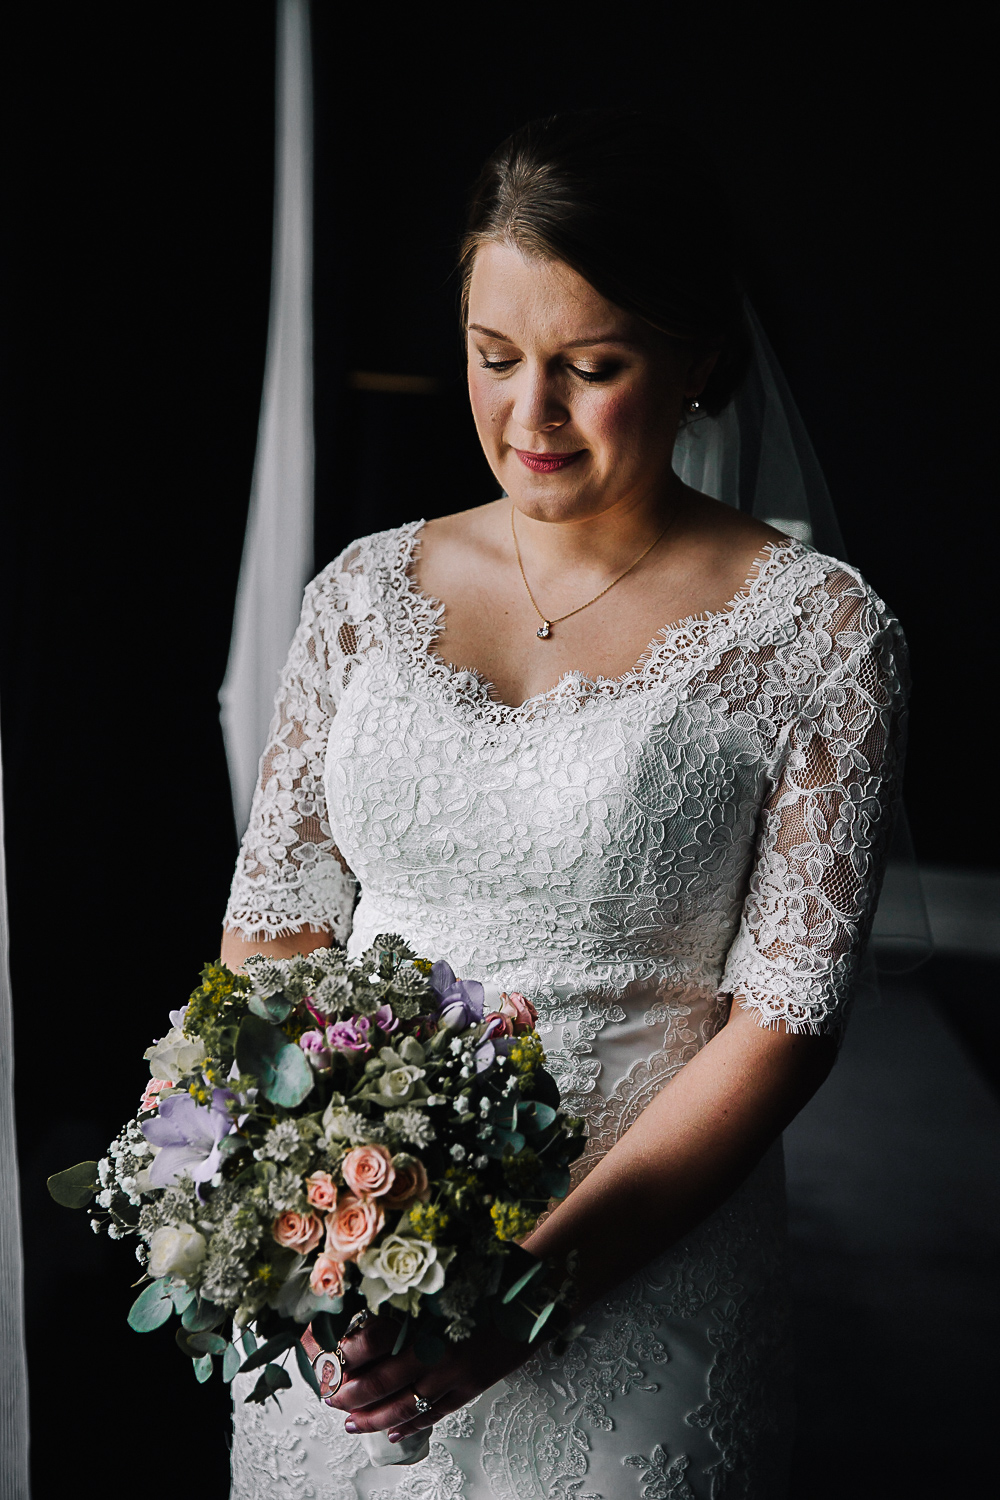 Bridal Portrait - Swynford Manor Wedding Photographer